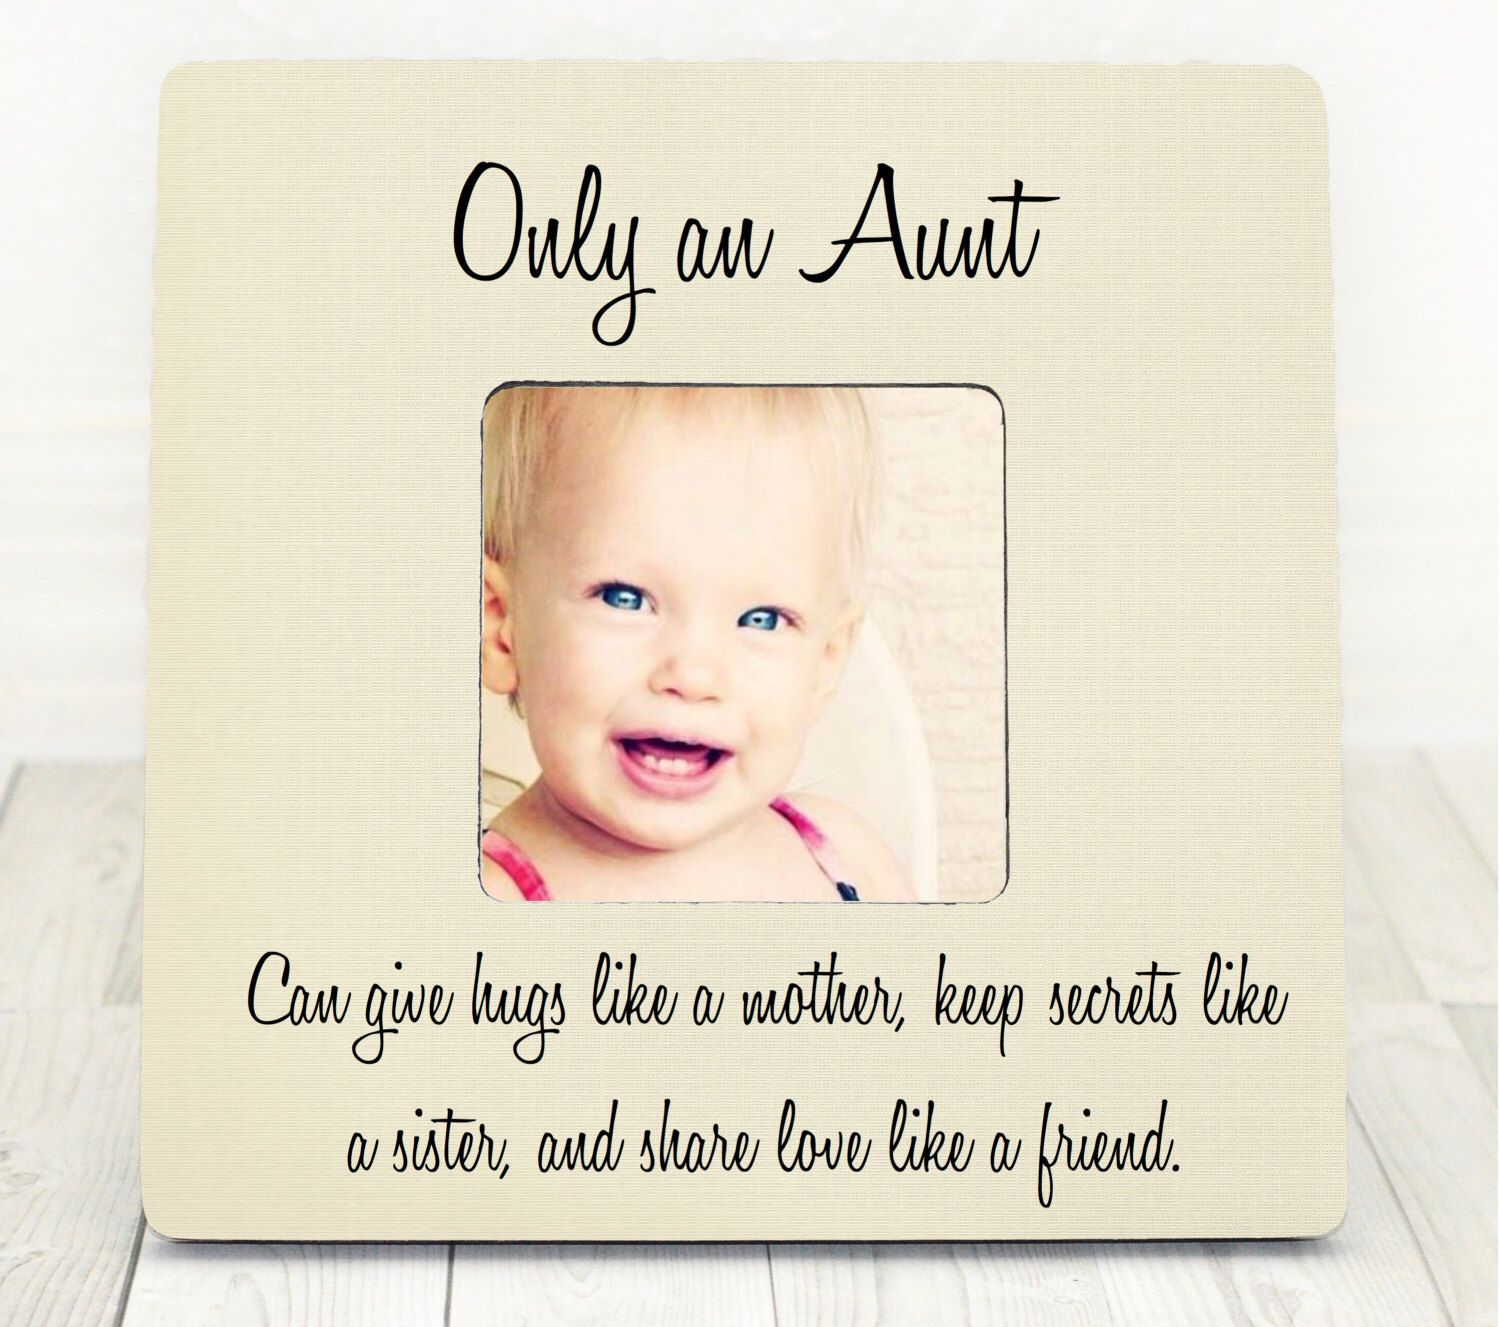 Christmas Gifts For Nephew And Niece: Aunt Niece GIFT Personalized Picture Frame Gift For Aunt